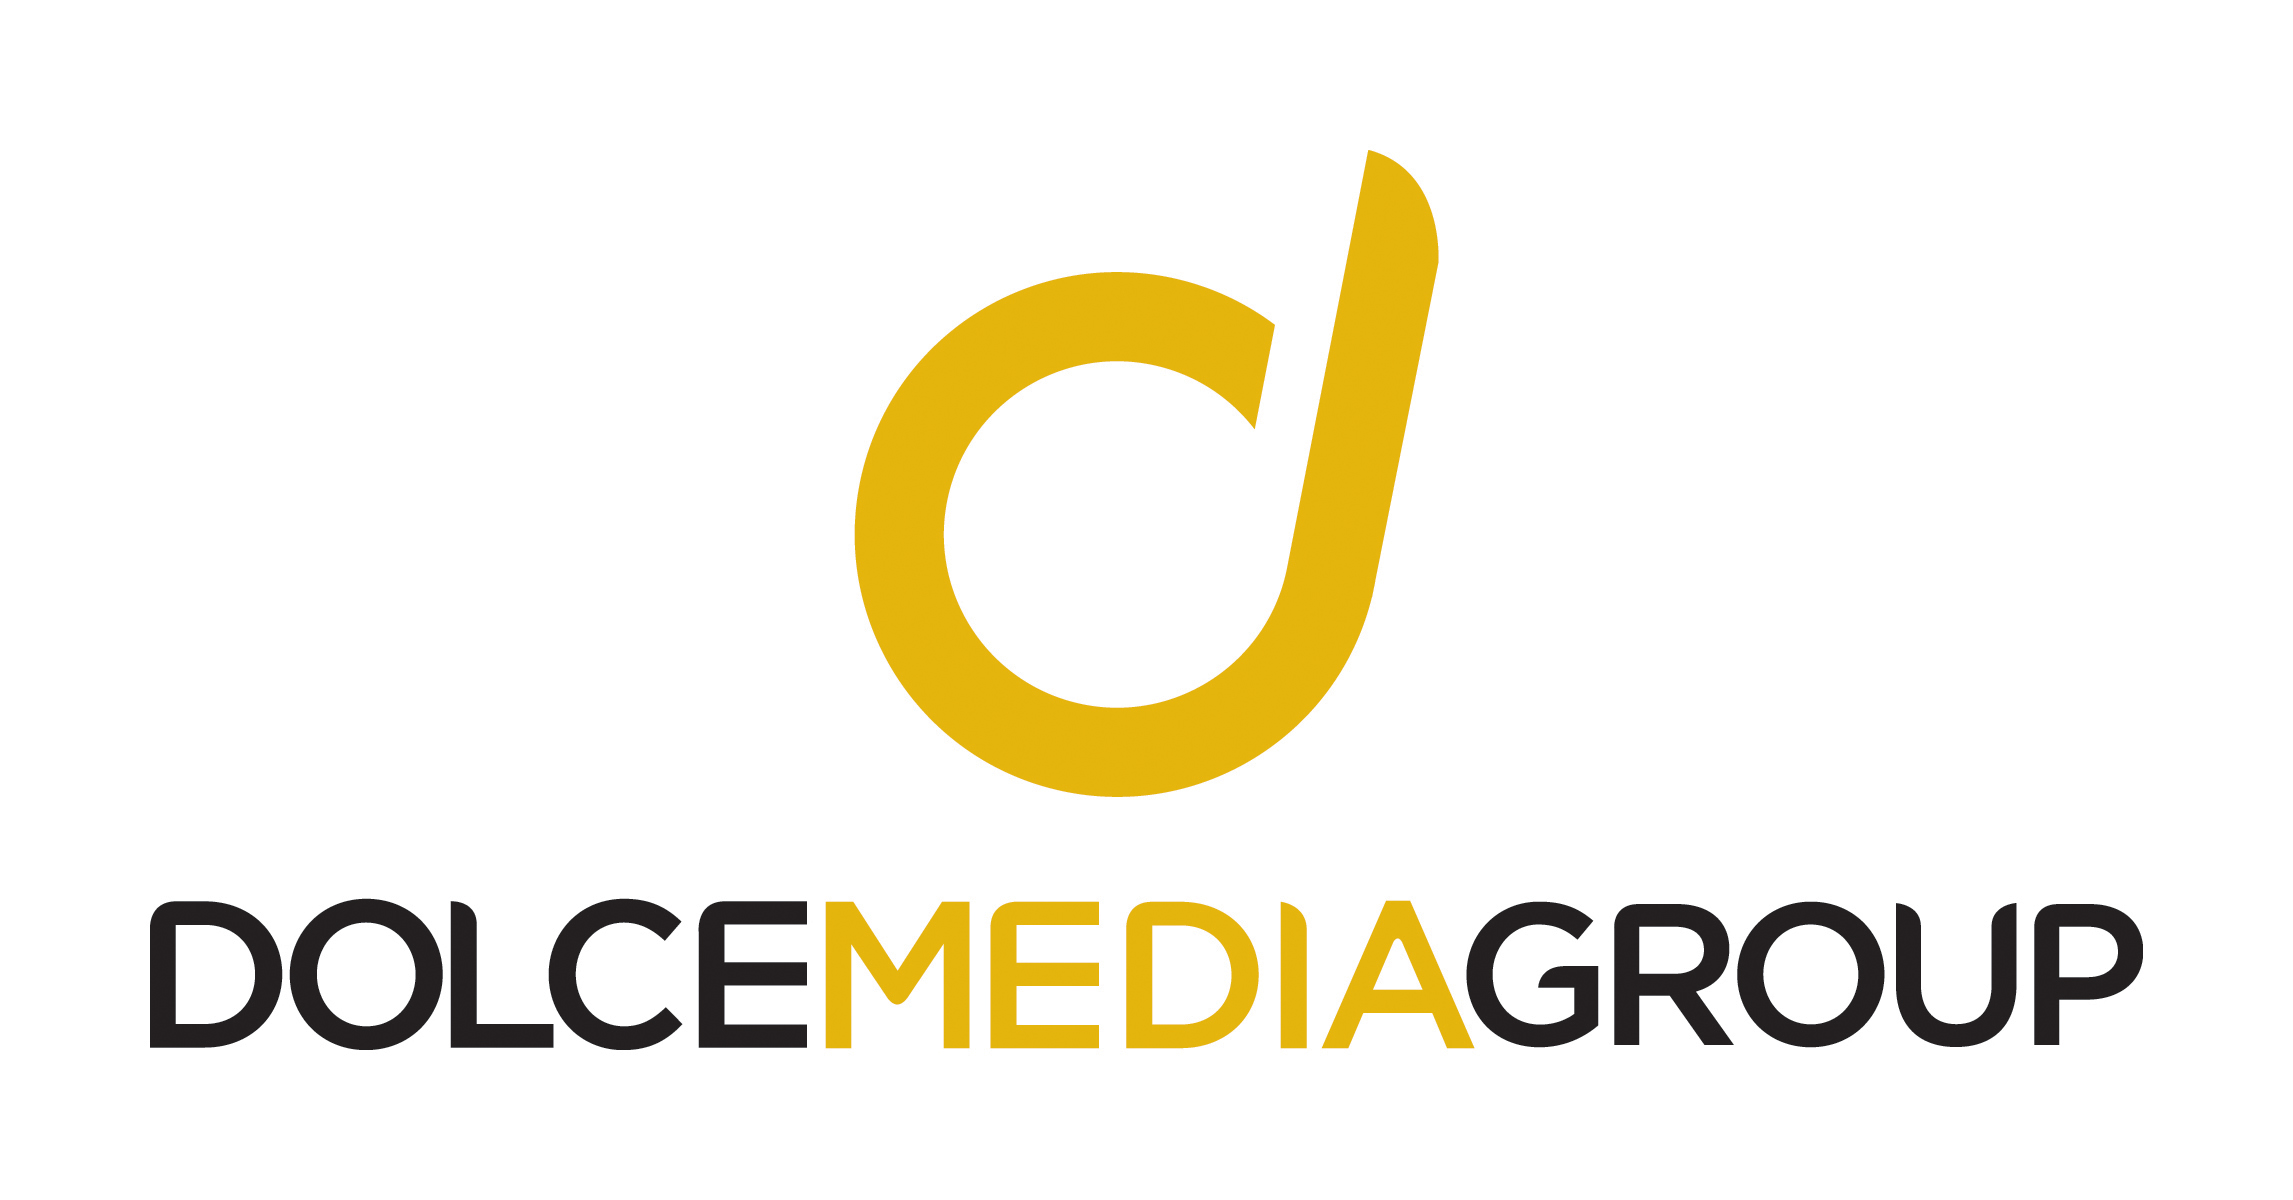 final DMG logo wordmark